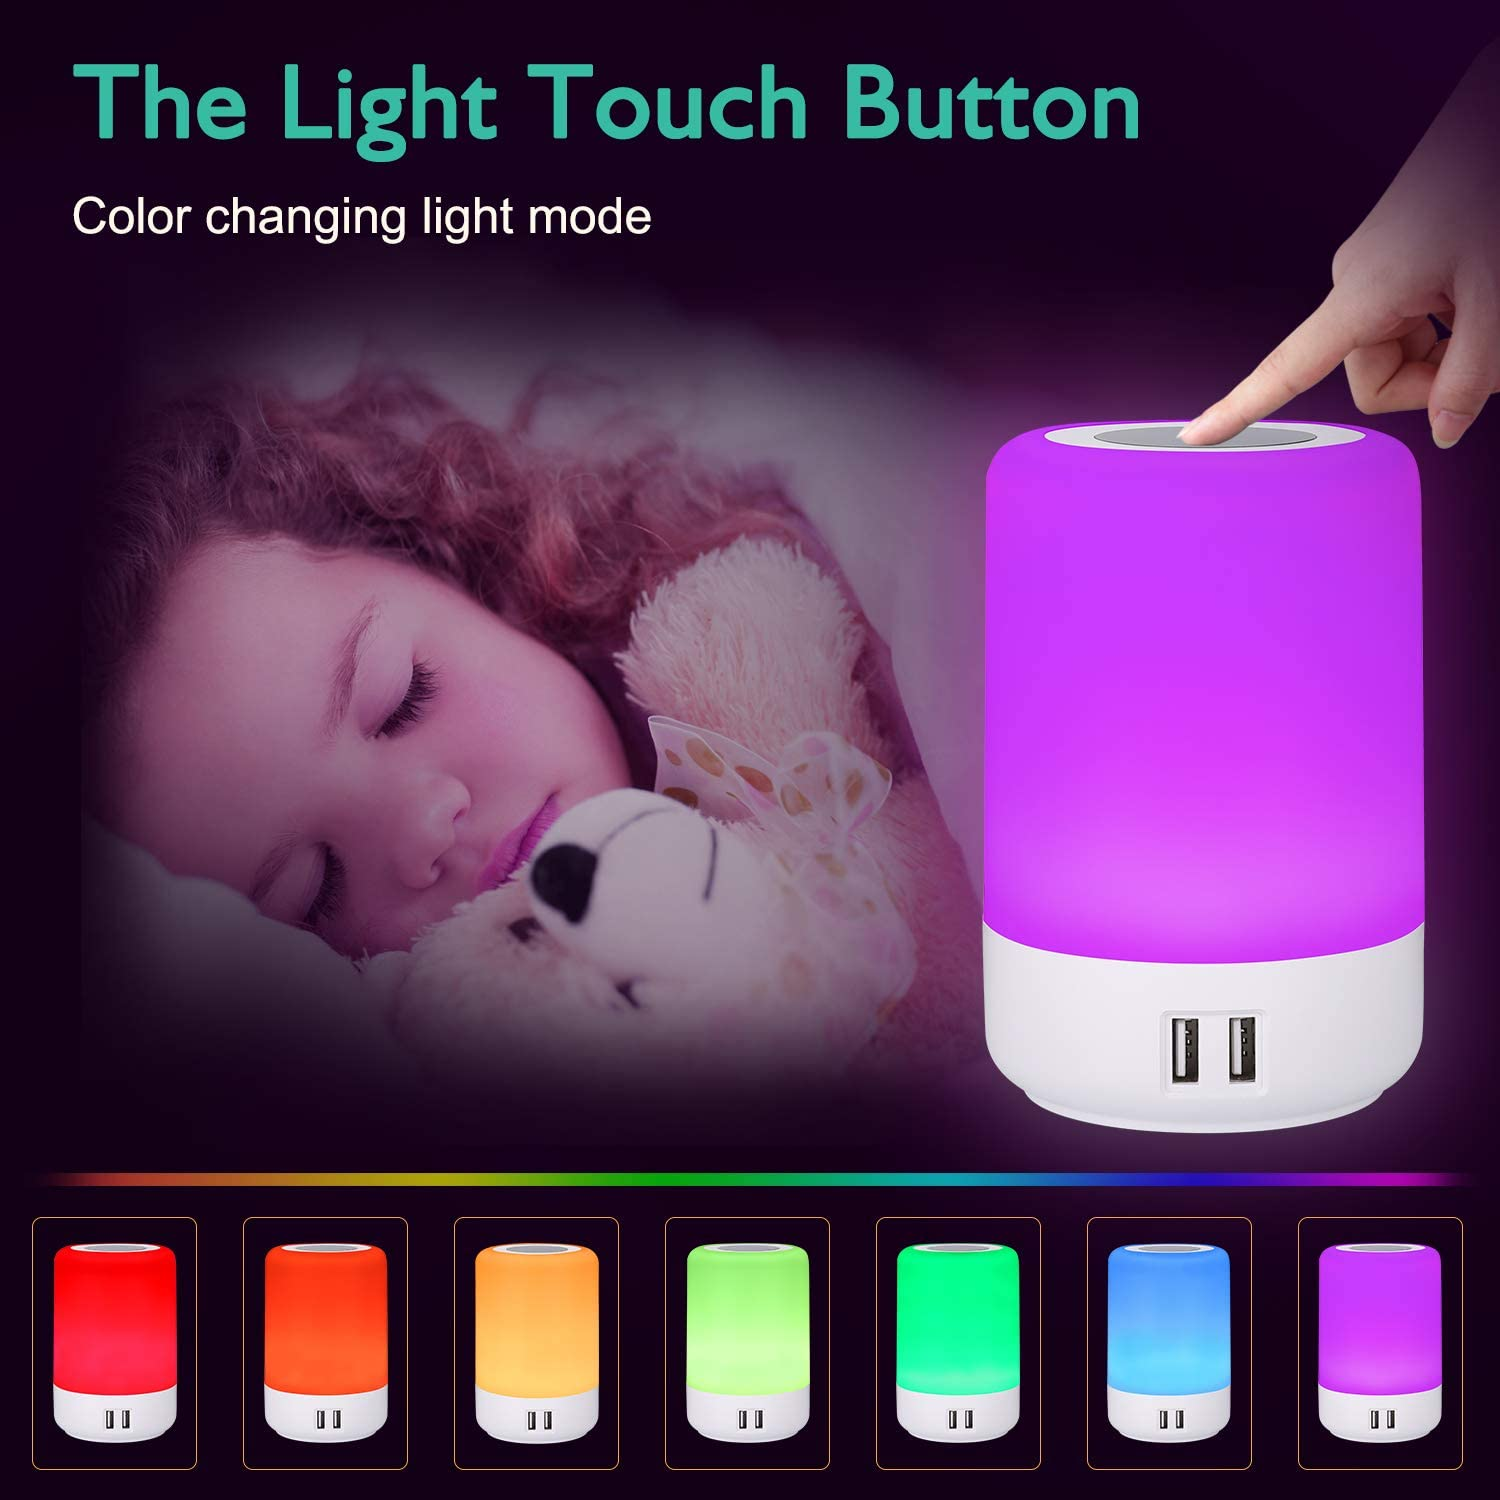 Lámpara escritorio led, luz nocturna infantil, Smart Touch Lamp, lamparas tactiles a pilas, lampara inteligente colores (luz blanca cálida regulable de 3 niveles y cambio de color de seis RGB) Usb Lamp